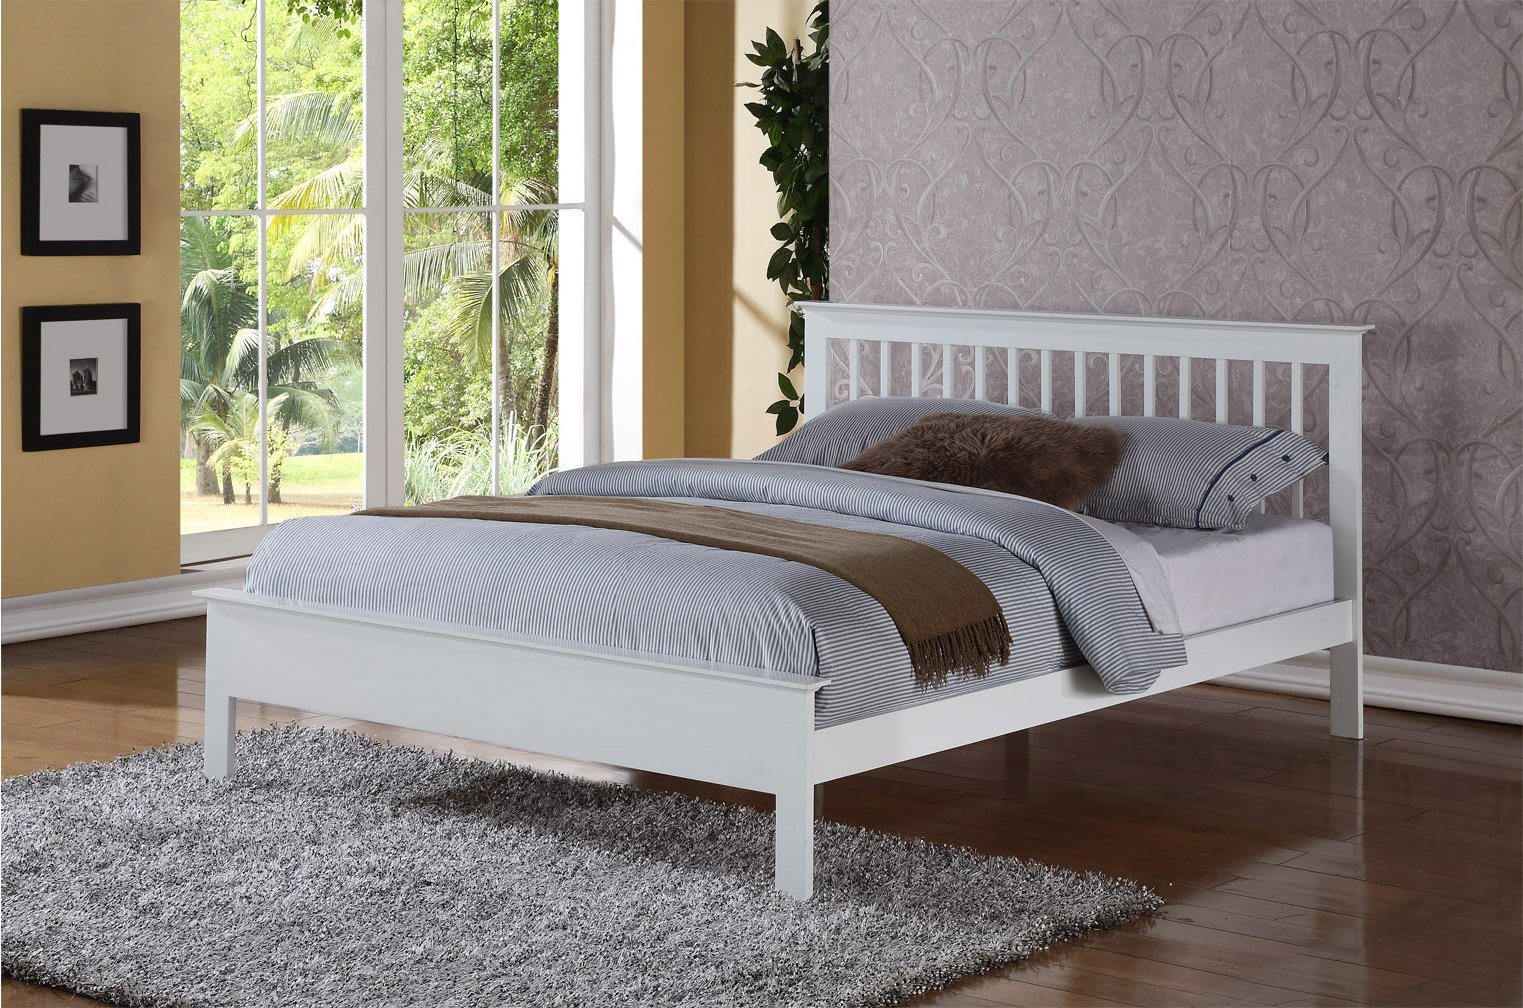 Ultimum Pentre Headboard White 6ft Pentre Super King